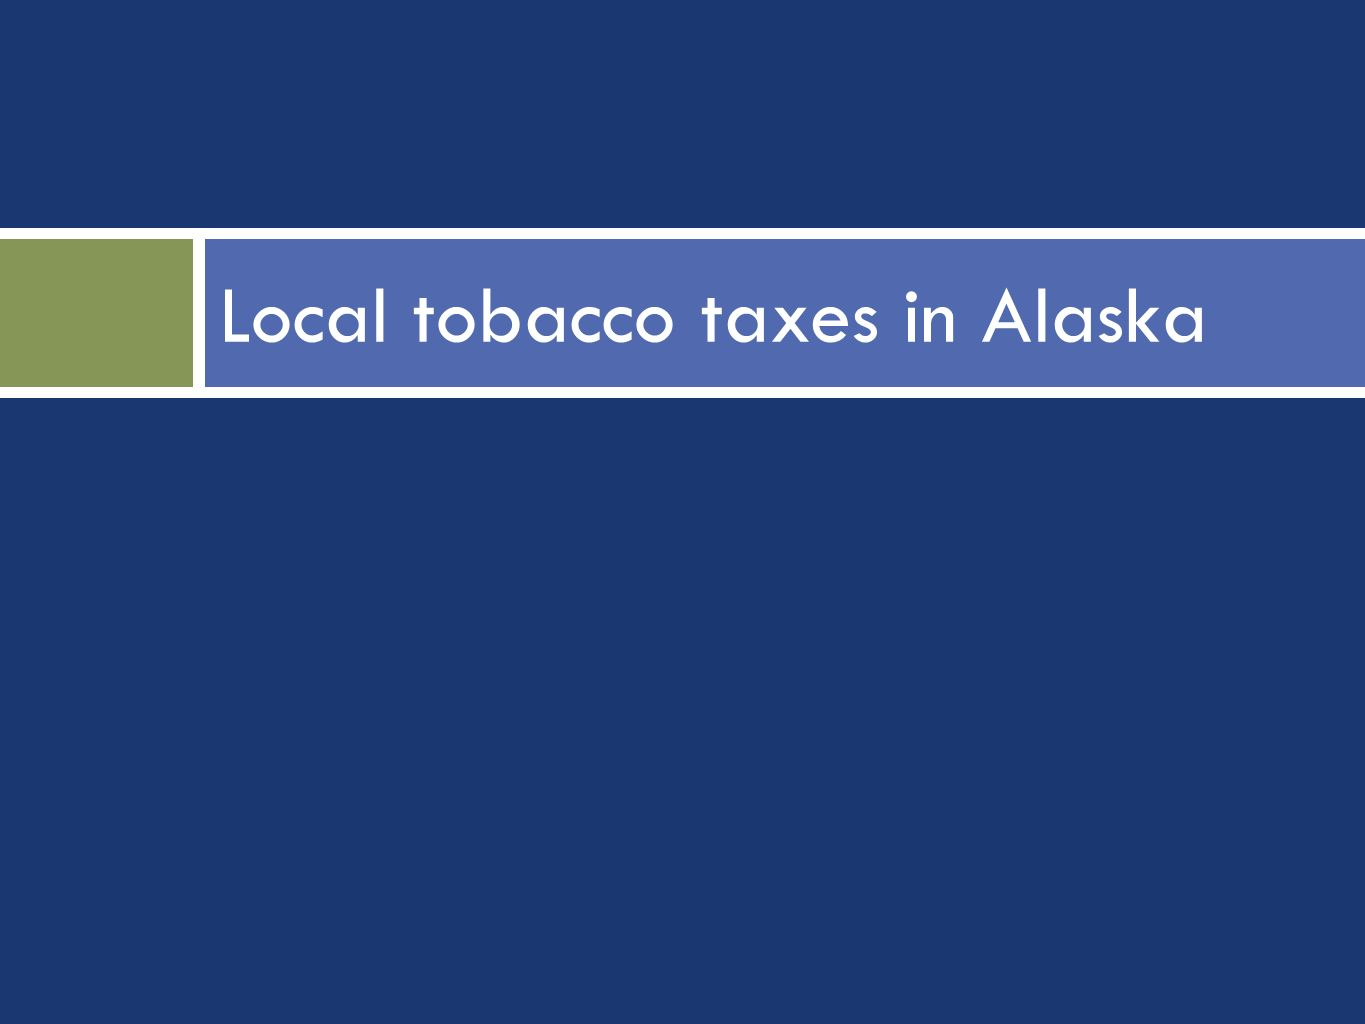 Local tobacco taxes in Alaska